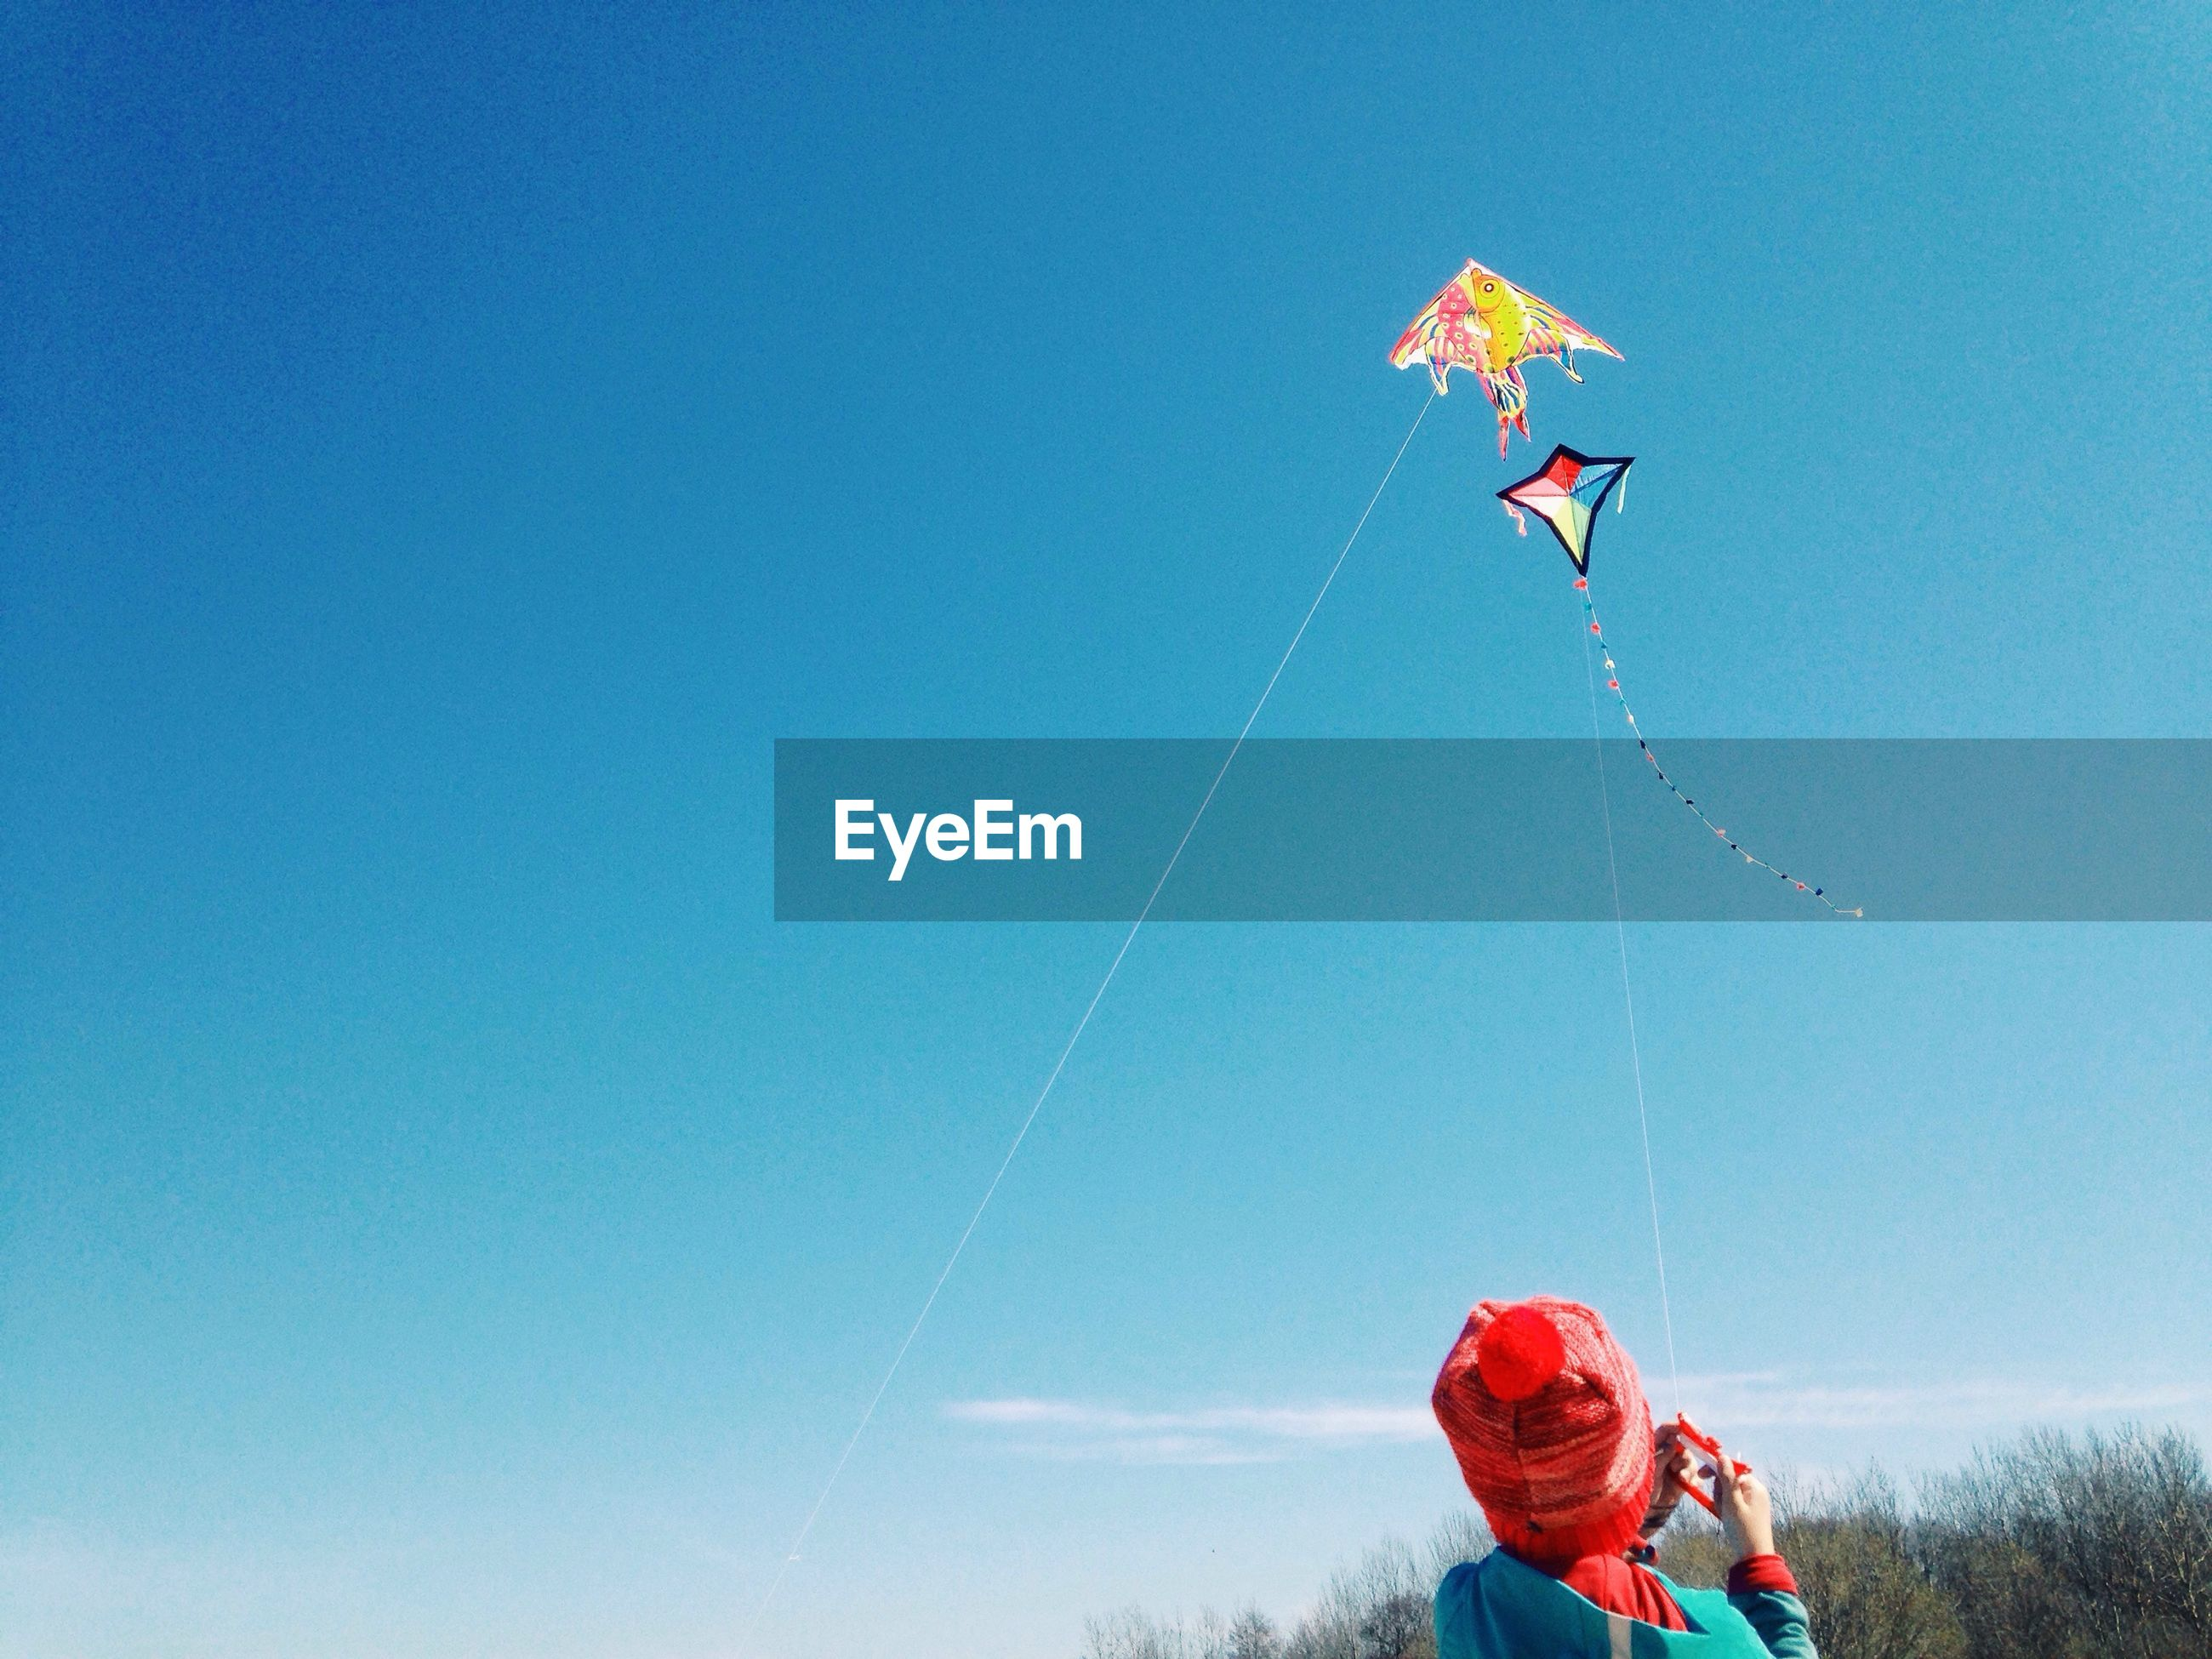 Rear view of person flying kite against clear blue sky